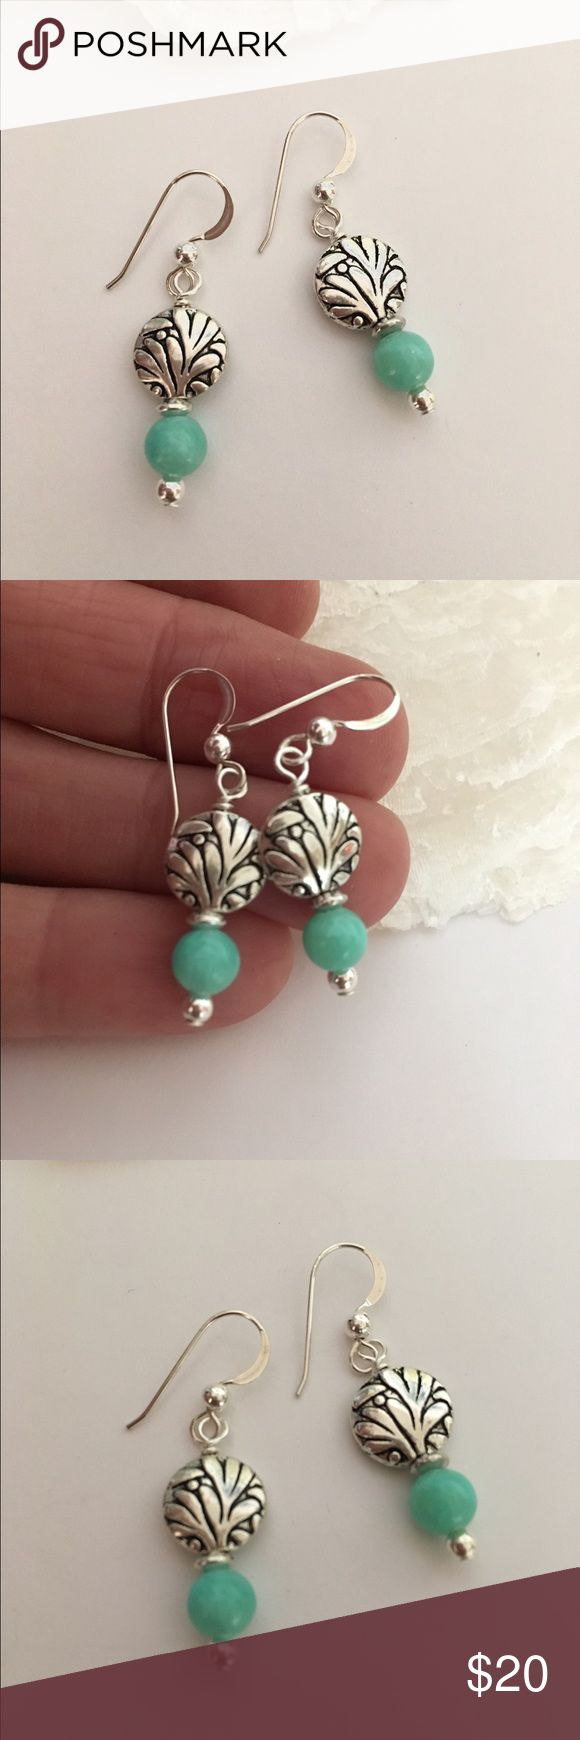 Aqua Quartz Earrings So Pretty for Summer. Dyed Aqua Quartz Gemstones with Antique Silver Lentil and Sterling Silver Earwires with Bead Detail Includes rubber safety backs Jewelry Earrings